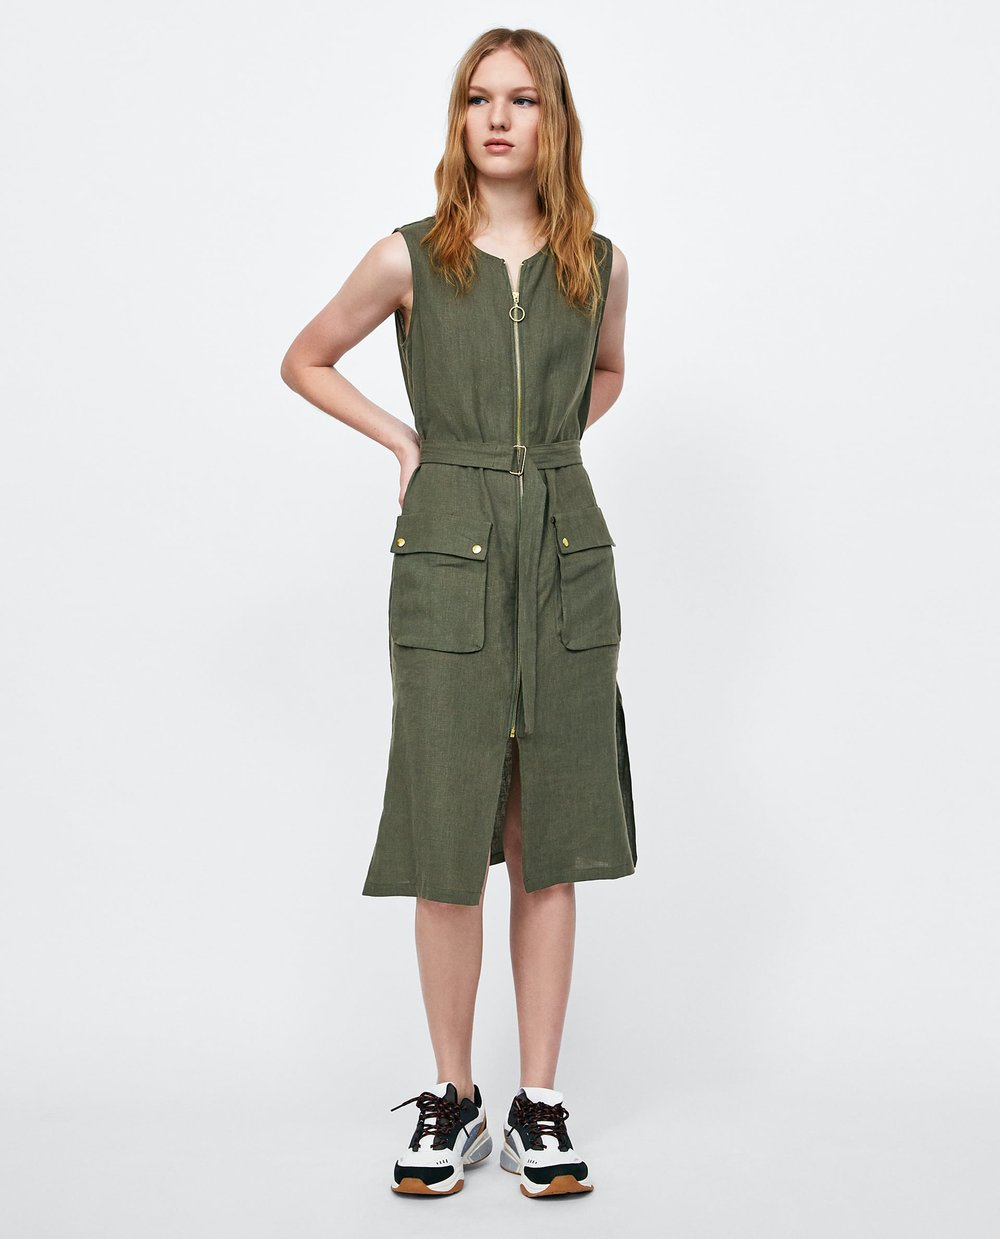 https://www.zara.com/ca/en/linen-zip-up-dress-p00387076.html?v1=6452139&v2=968534